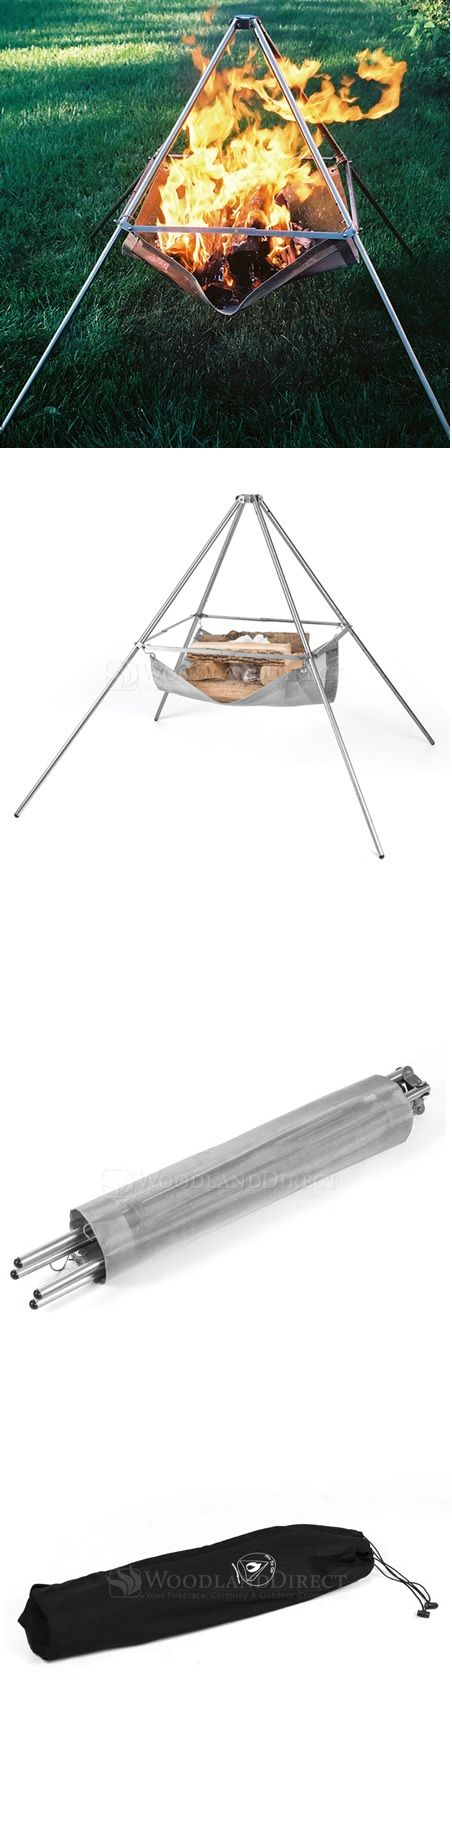 The Wanderer Stainless Steel Portable Fire Pit